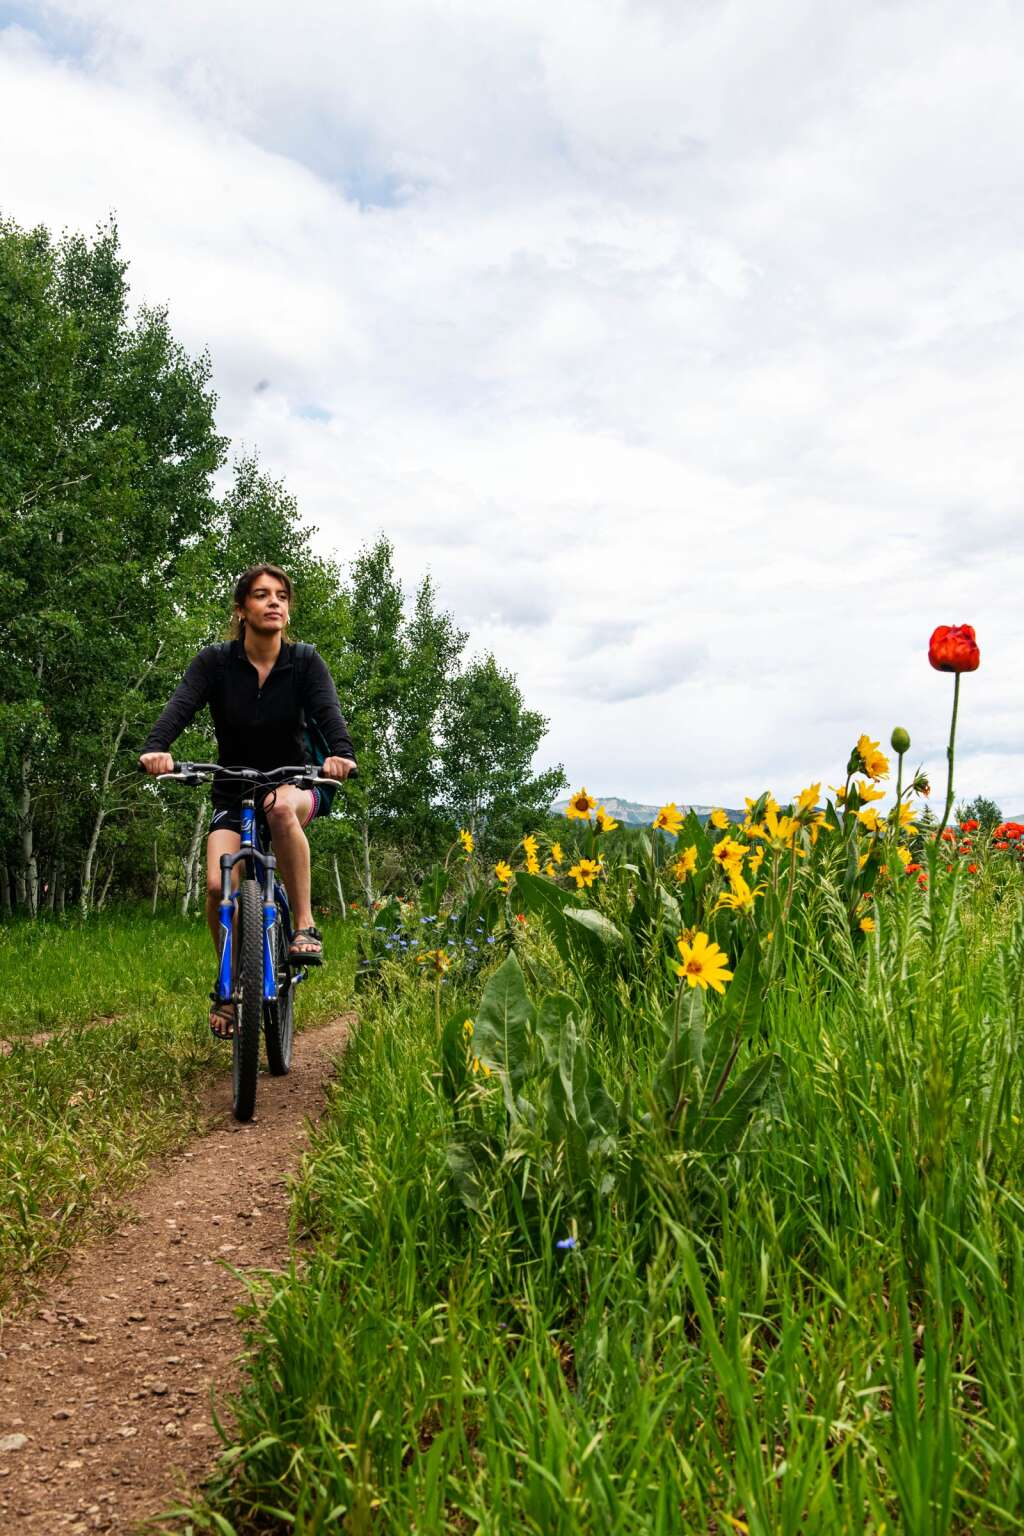 Emily Couture rides her bike through flowery fields of Marolt Open Space in Aspen on Friday, June 25, 2021. (Kelsey Brunner/The Aspen Times)